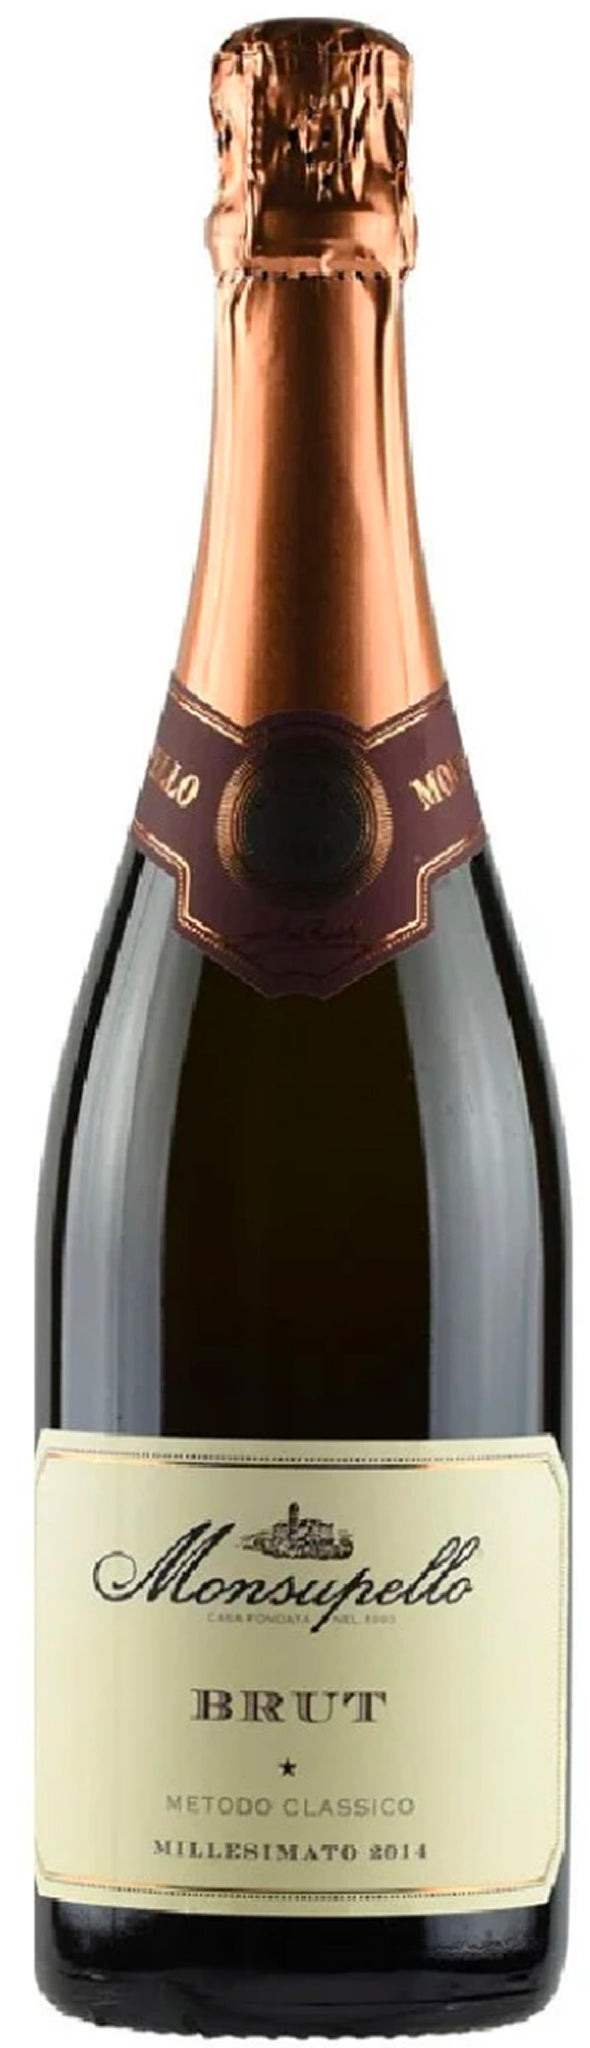 SPUMANTE BRUT MILLESIMATO 2014 MONSUPELLO